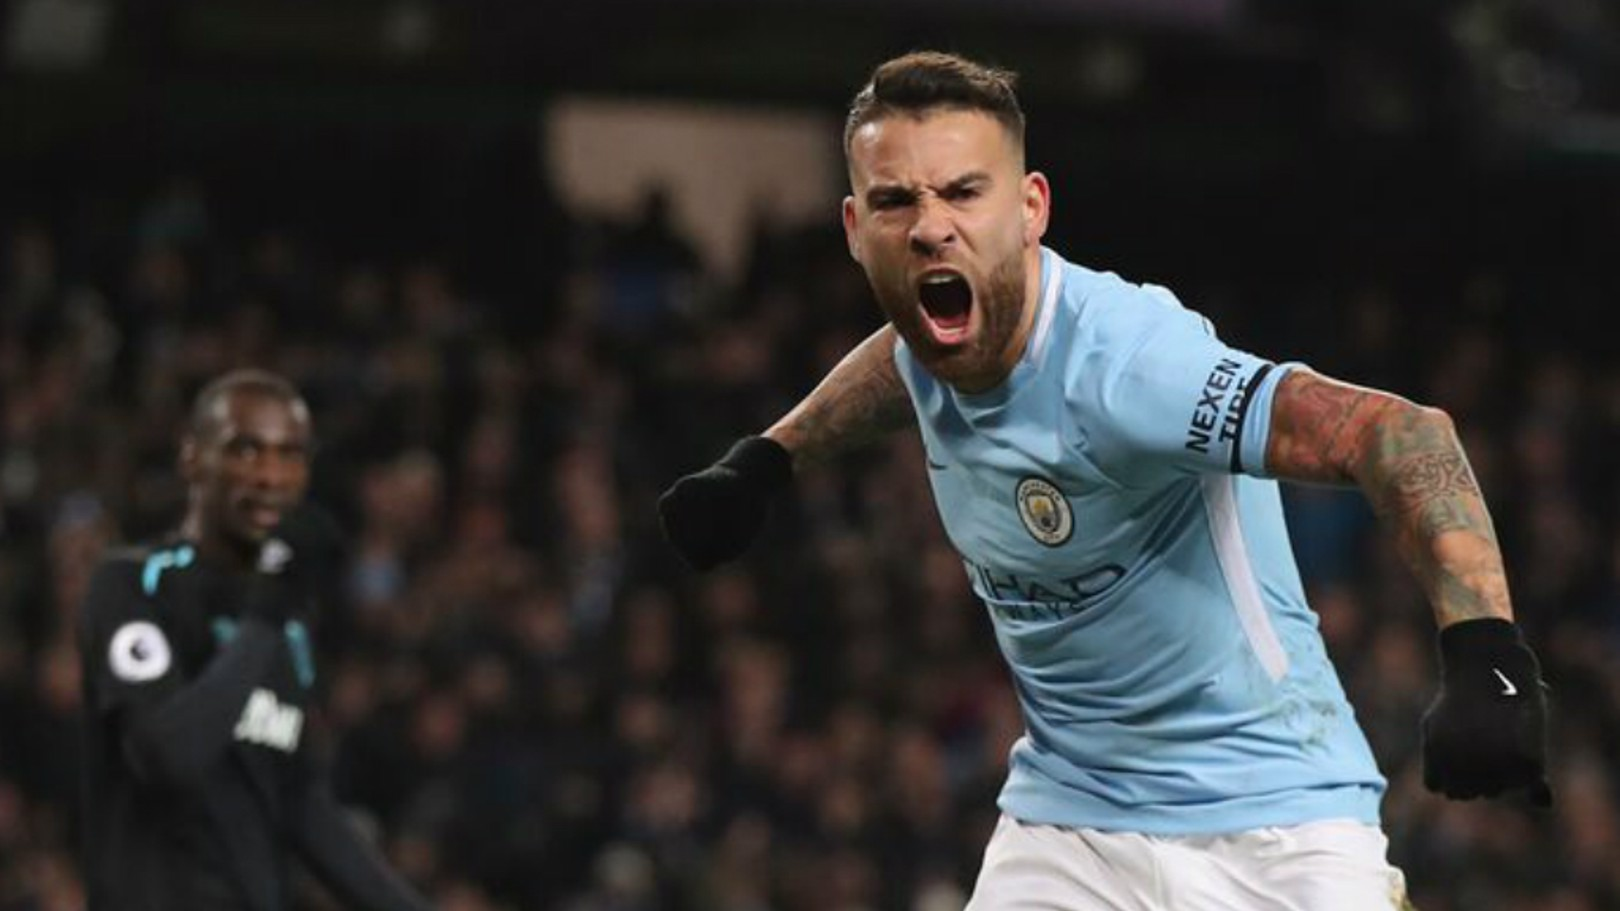 PASS MASTER: Nico Otamendi is on course to register 3,000 completed passes in the Premier League this season